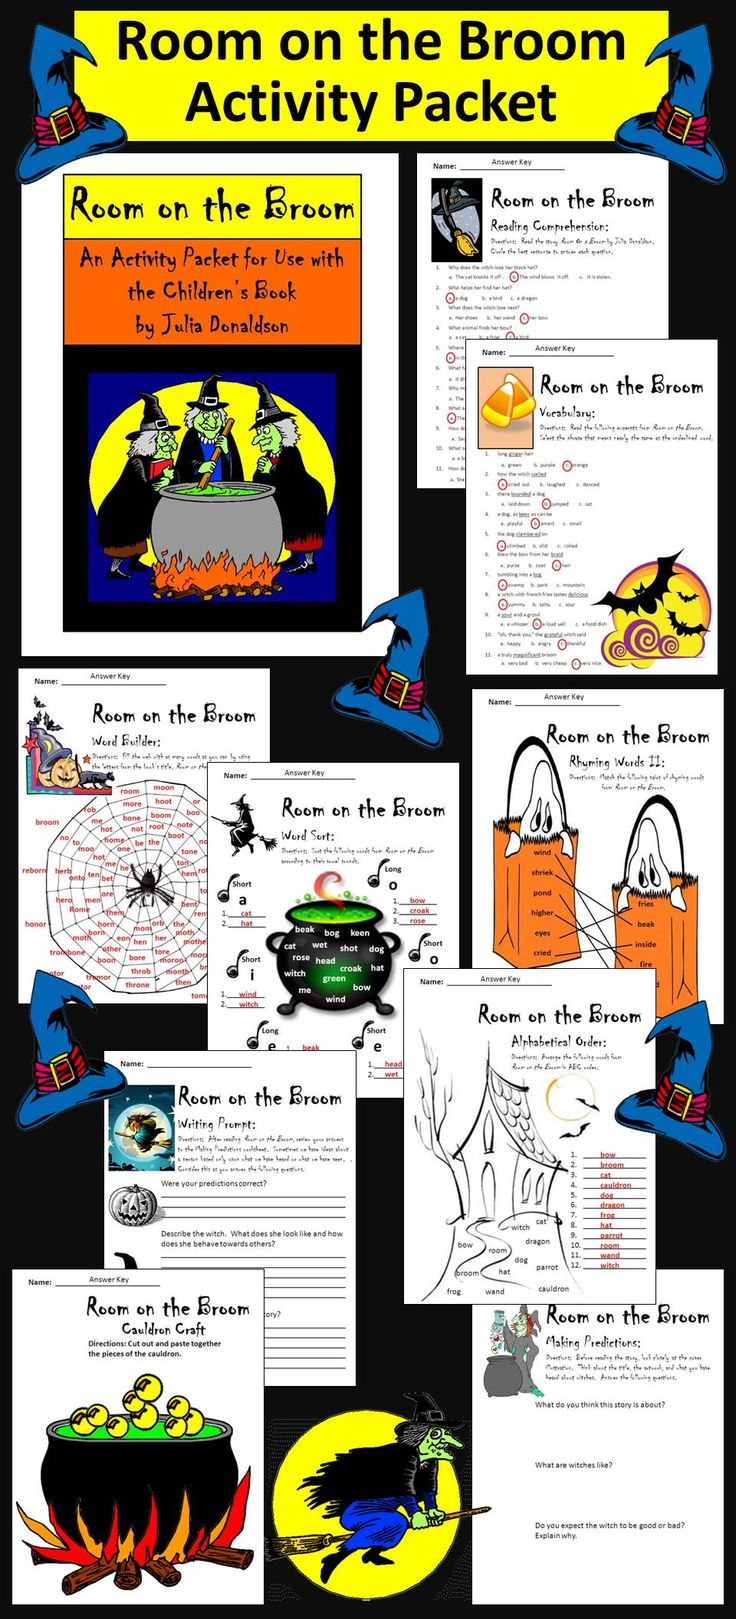 Room on the Broom Activity Packet: This colorful Halloween language arts activity packet complements the children's book, Room on the Broom, by Julia Donaldson. Contents include: * One 11-question reading comprehension quiz * One synonyms worksheet * Two rhyming words worksheets * One alphabetical order worksheet * One word builder worksheet * One vowel sounds word sort worksheet * One pre-reading predictions activity * One writing prompt * Cauldron Craft * Witch Coloring Sheet * Answer keys